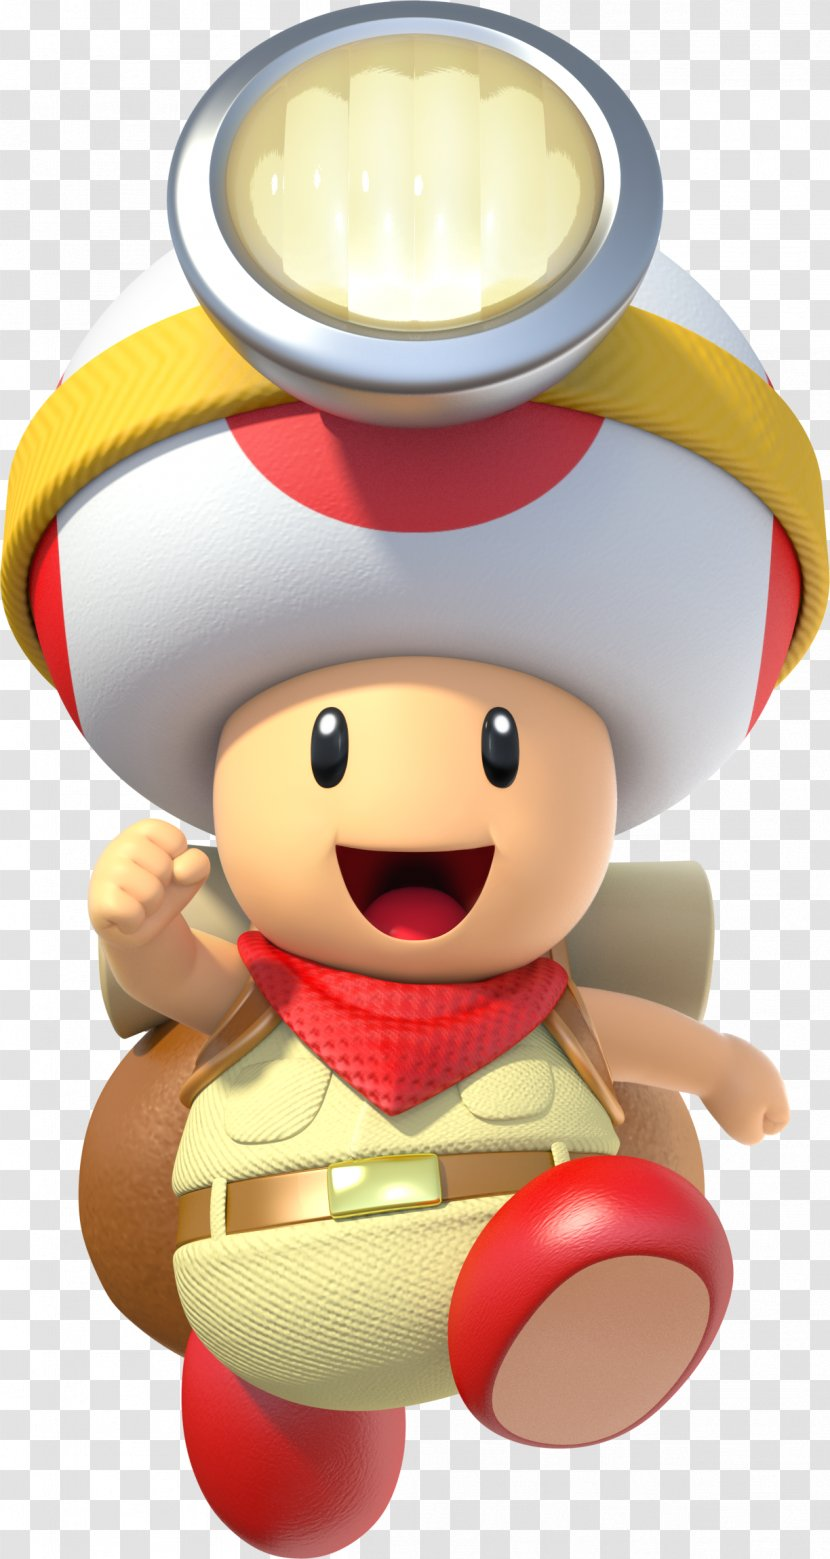 Captain Toad Treasure Tracker Super Mario Galaxy 2 Wii U Bros